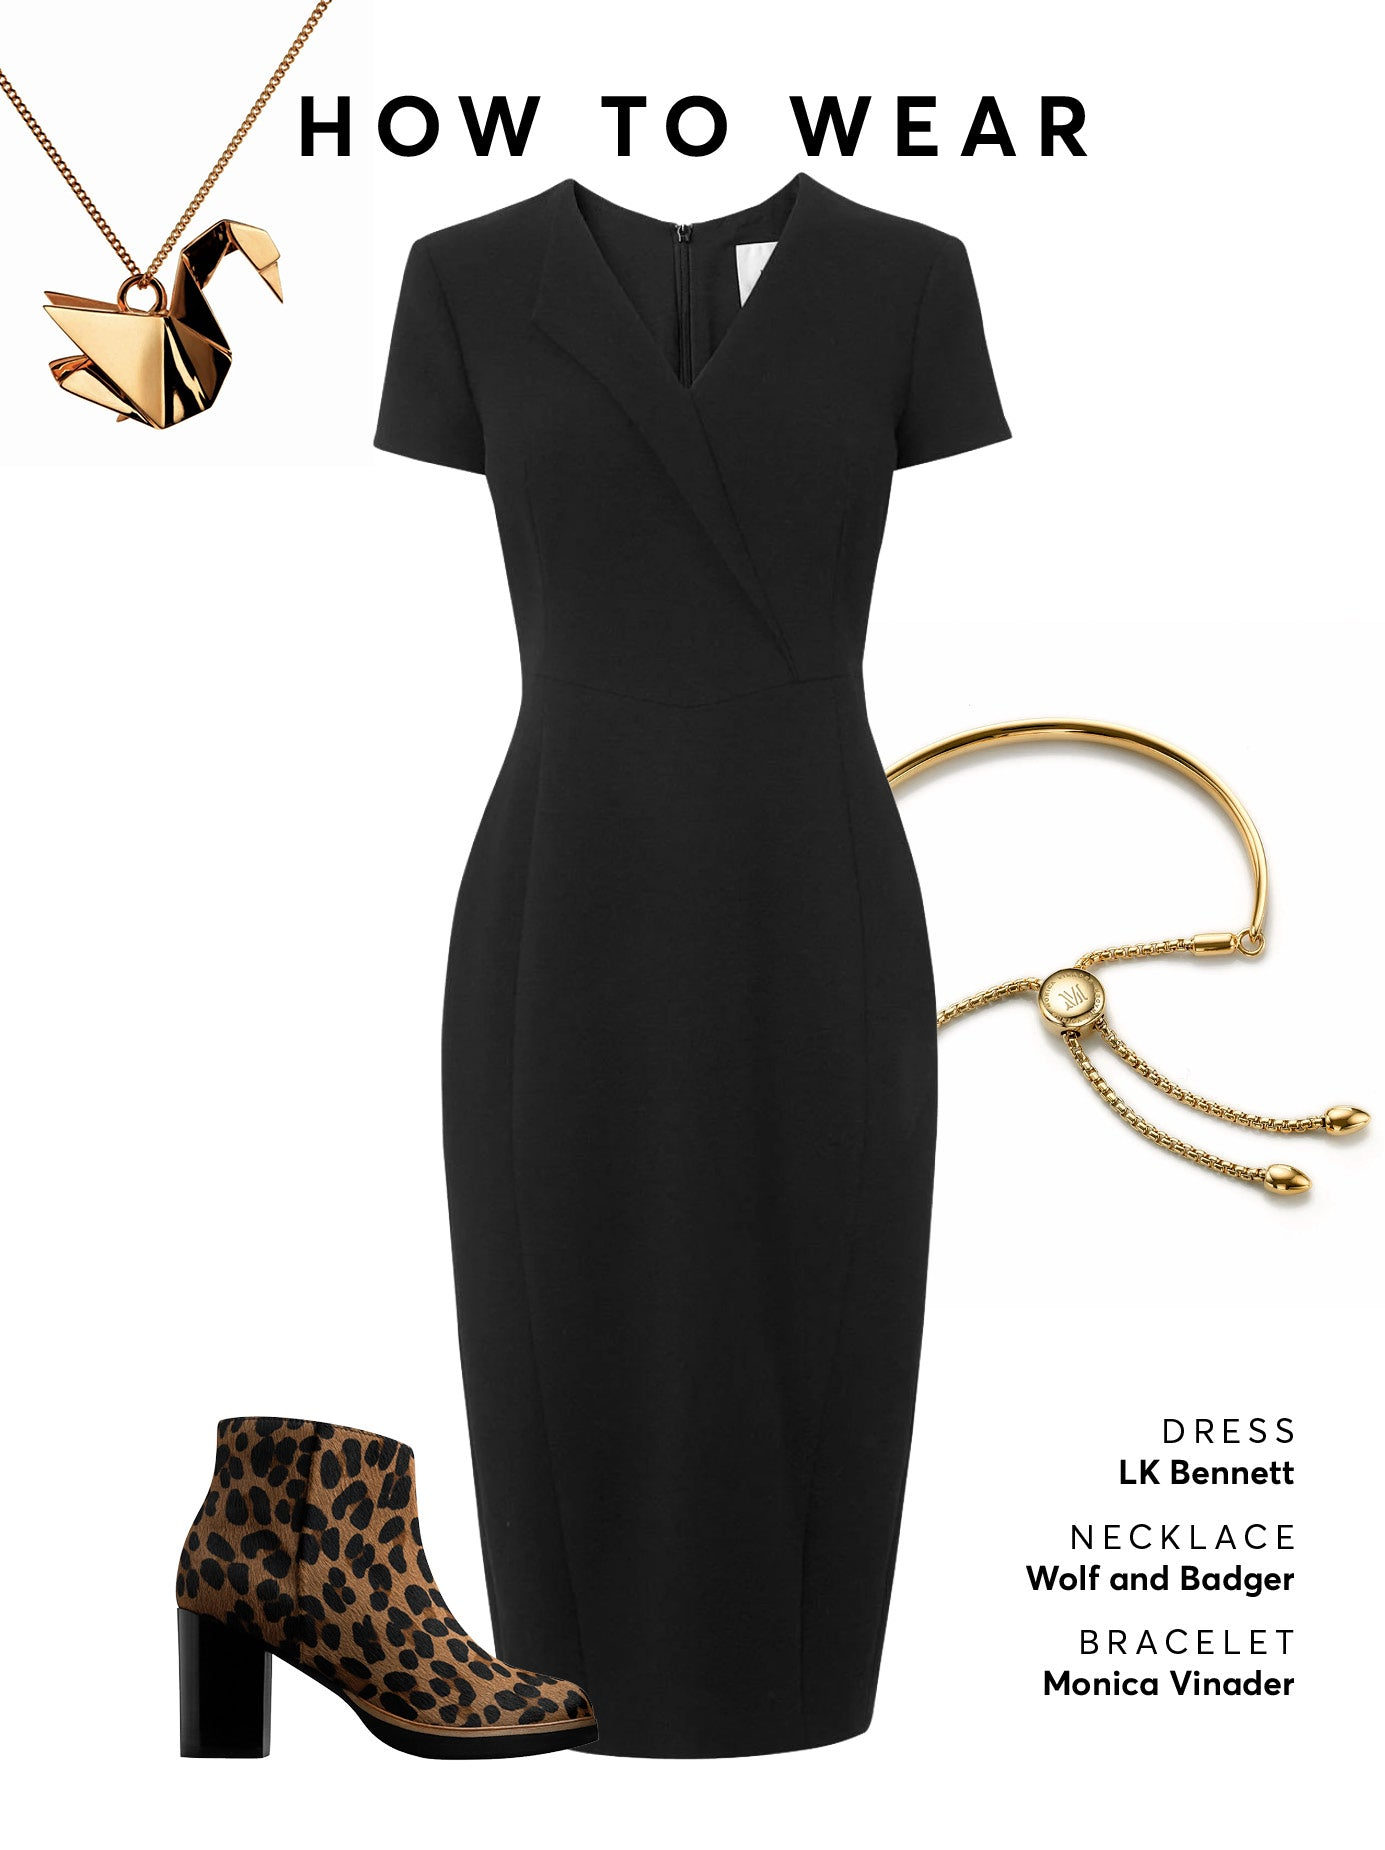 Wear with a black midi dress or skirt and statement gold jewellery.